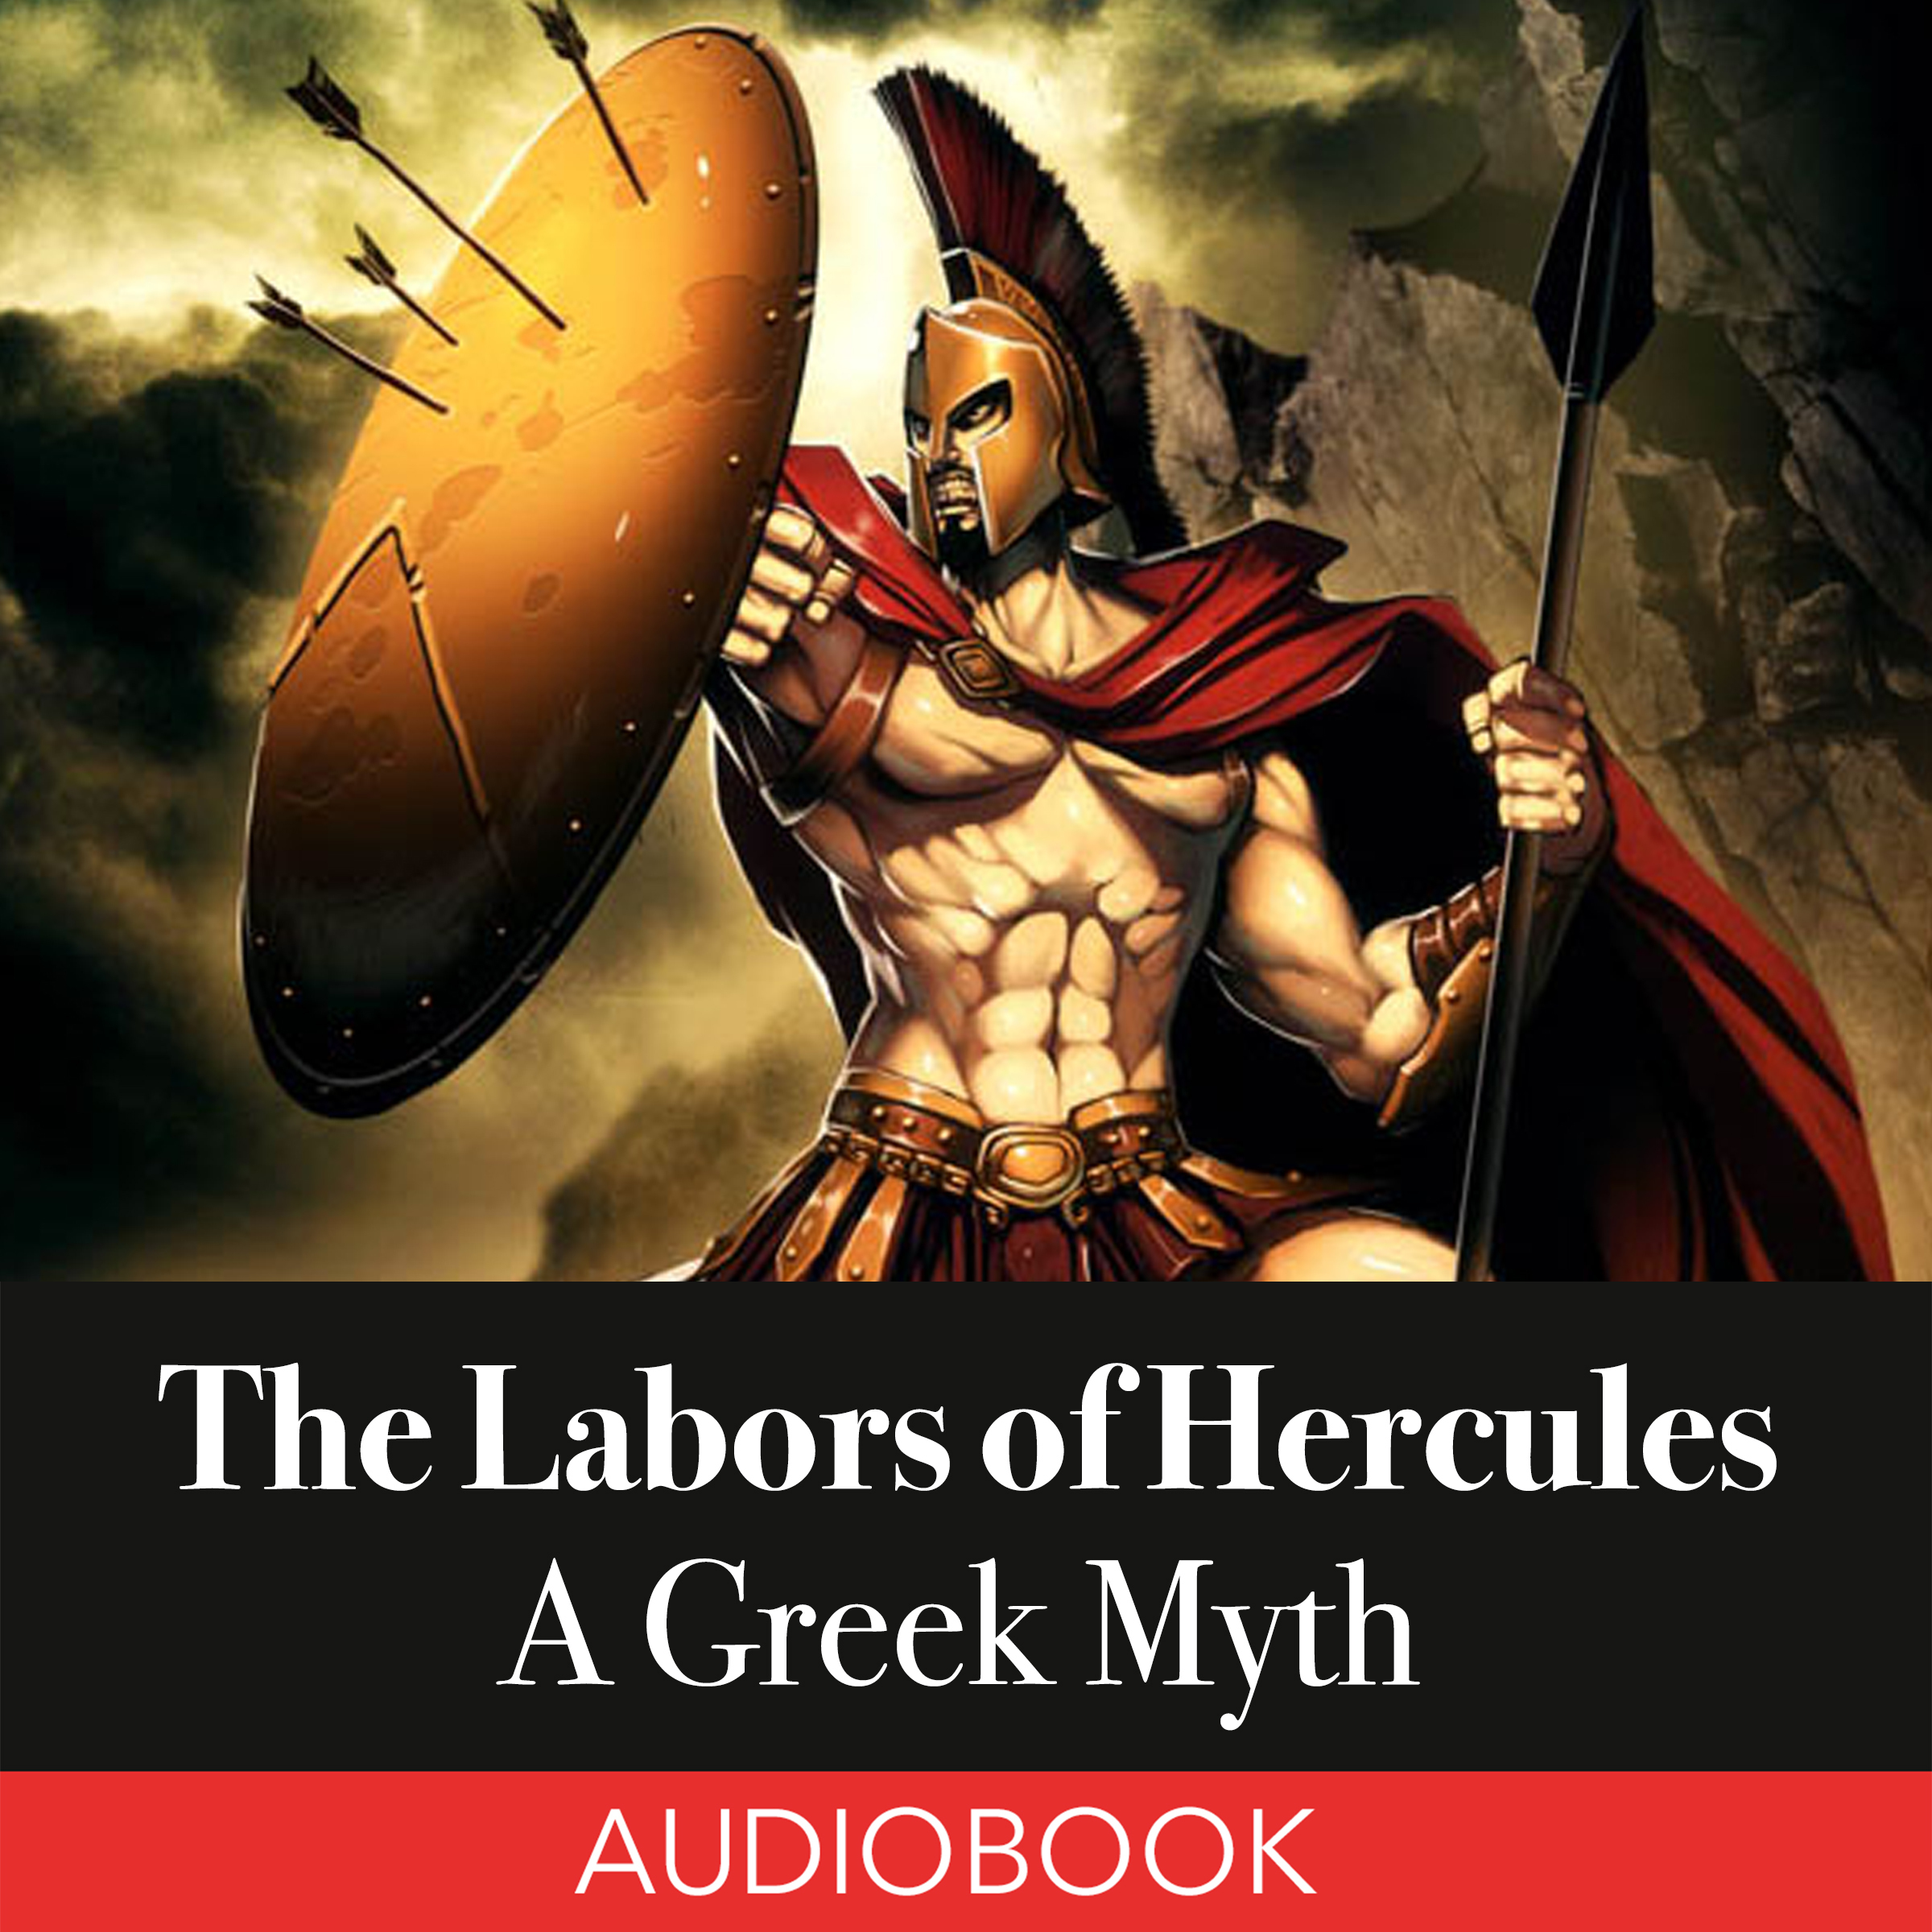 an analysis of the labors of hercules